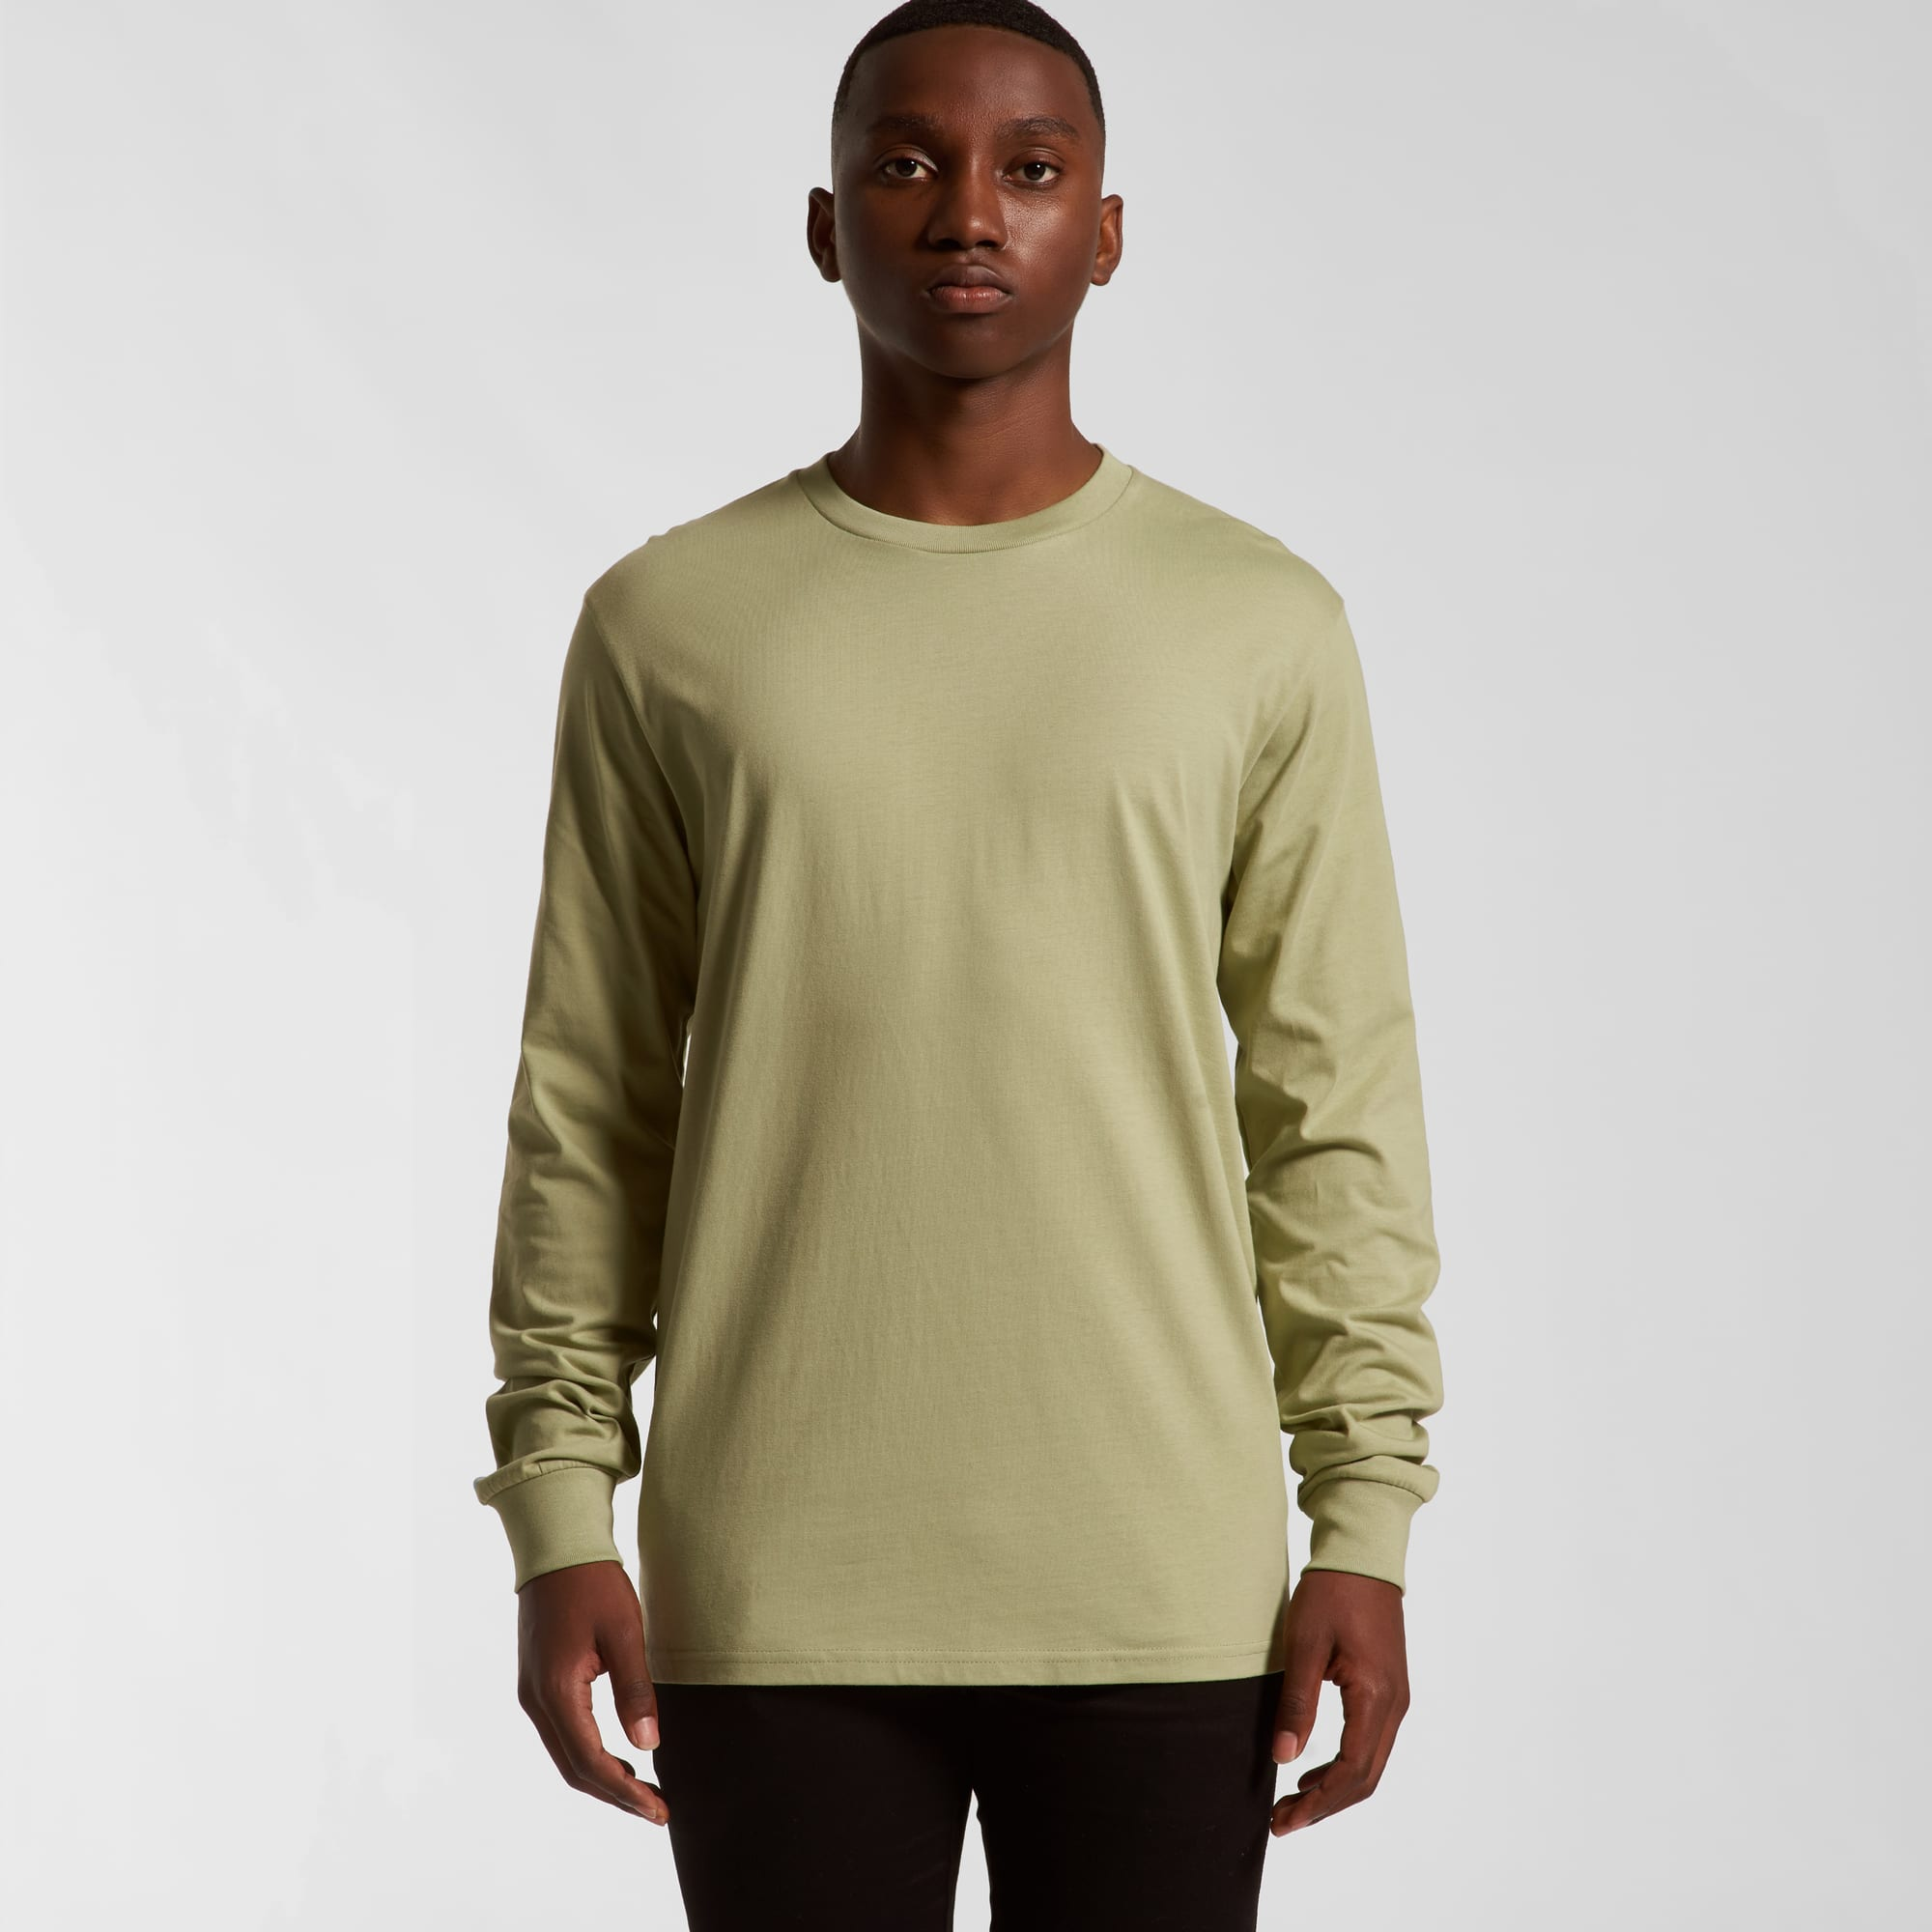 AS 5071 Mens Classic L/S Tee